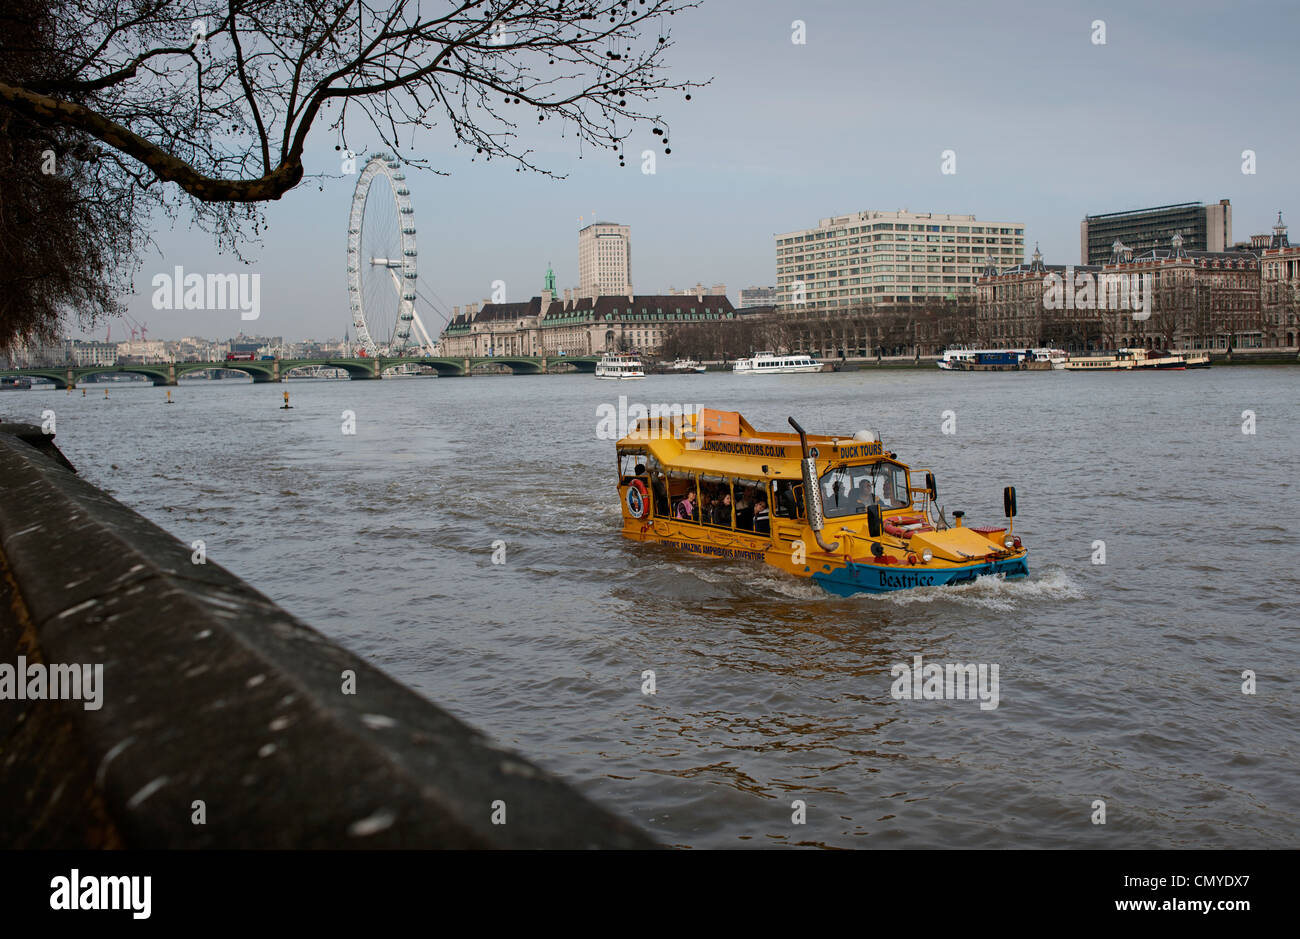 Duck Tours on the River Thames passing the Houses of Parliament and the London Eye, Westminster, London, England. - Stock Image